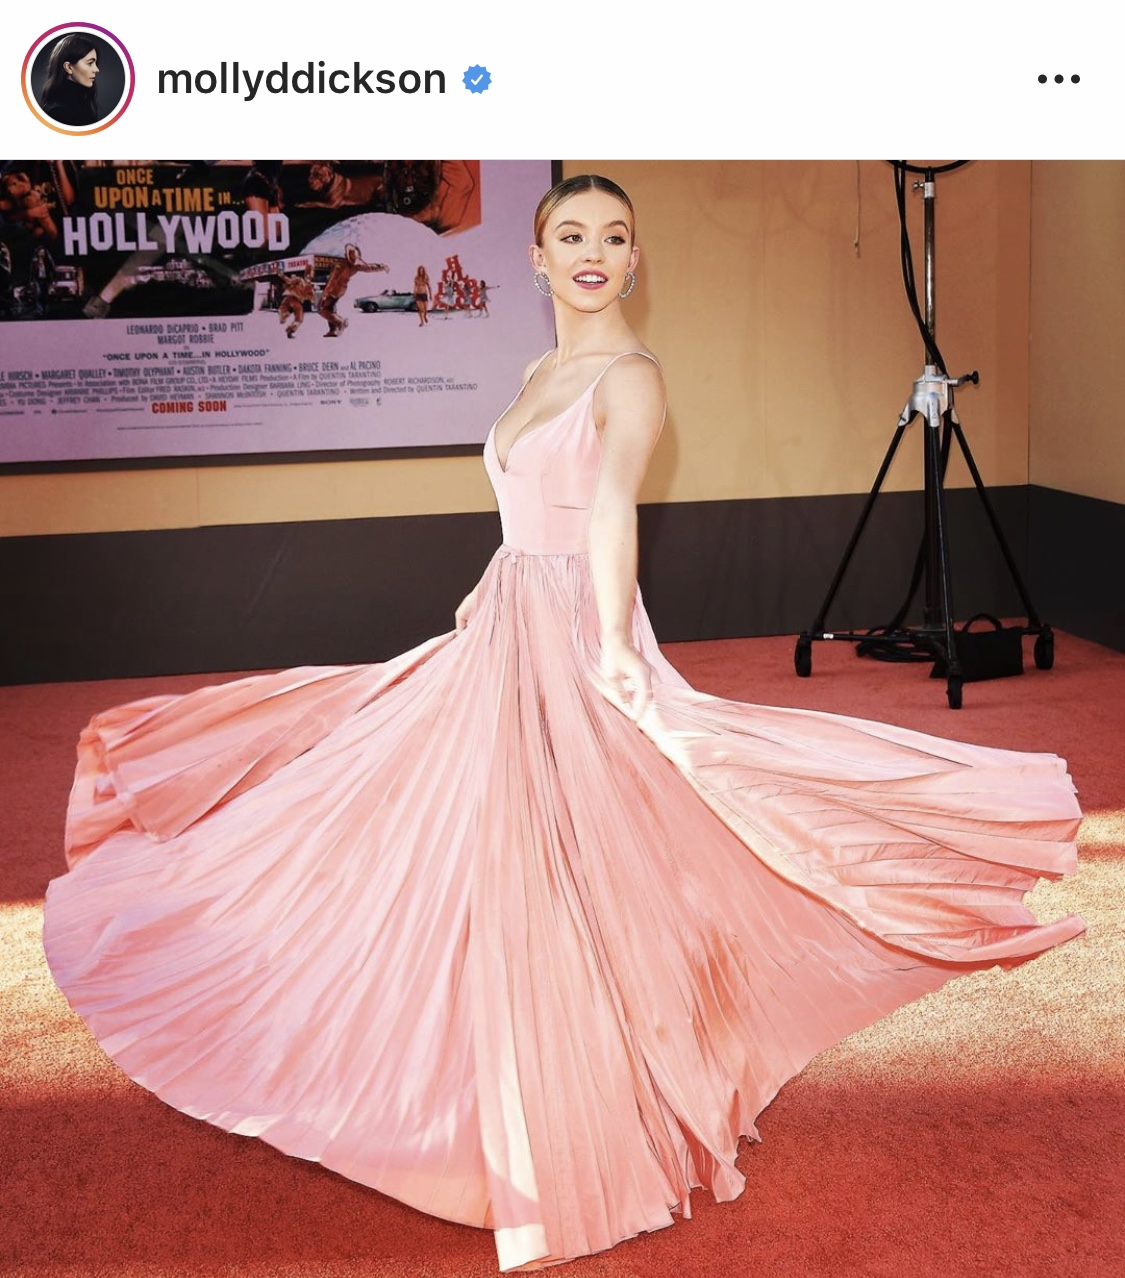 Sydney-Sweeney-wearing-MiuMiu-and-Ana-Khouri-jewellry-at-Once-upon-a-time-in-Hollywood.jpg